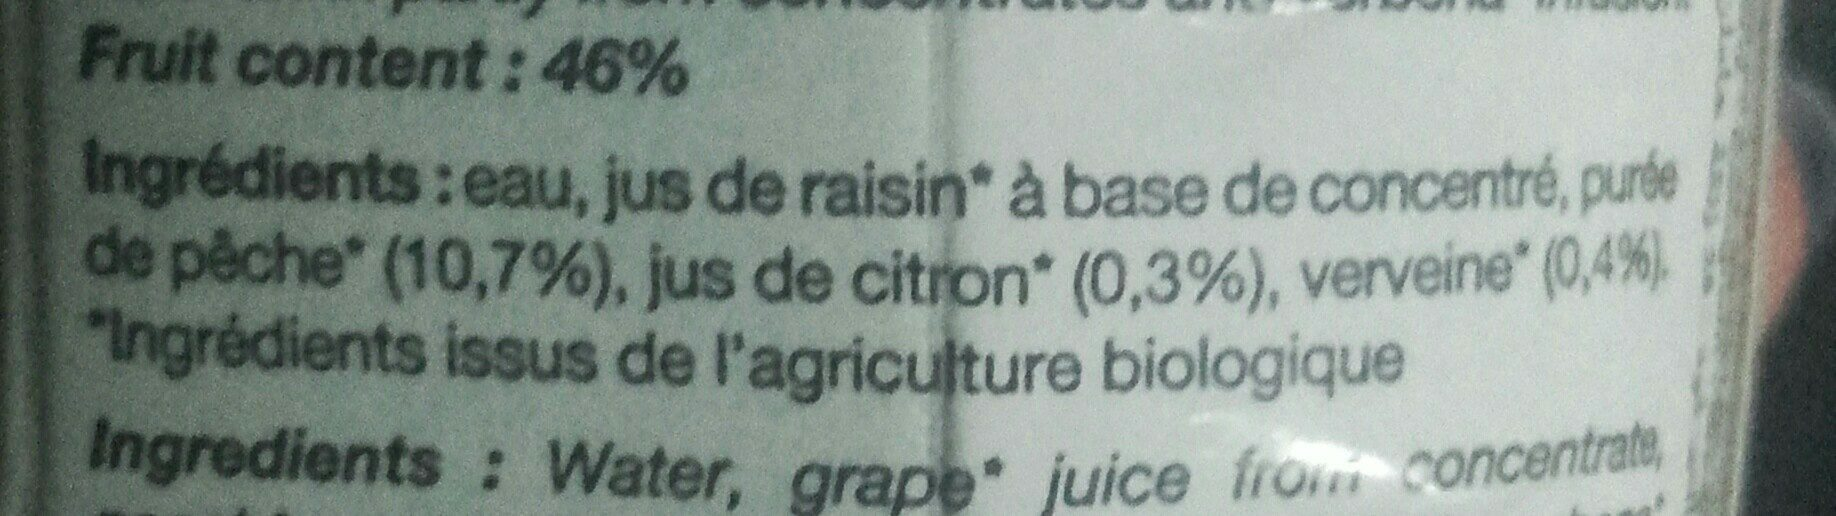 Pêche-Citron-Verveine - Ingredients